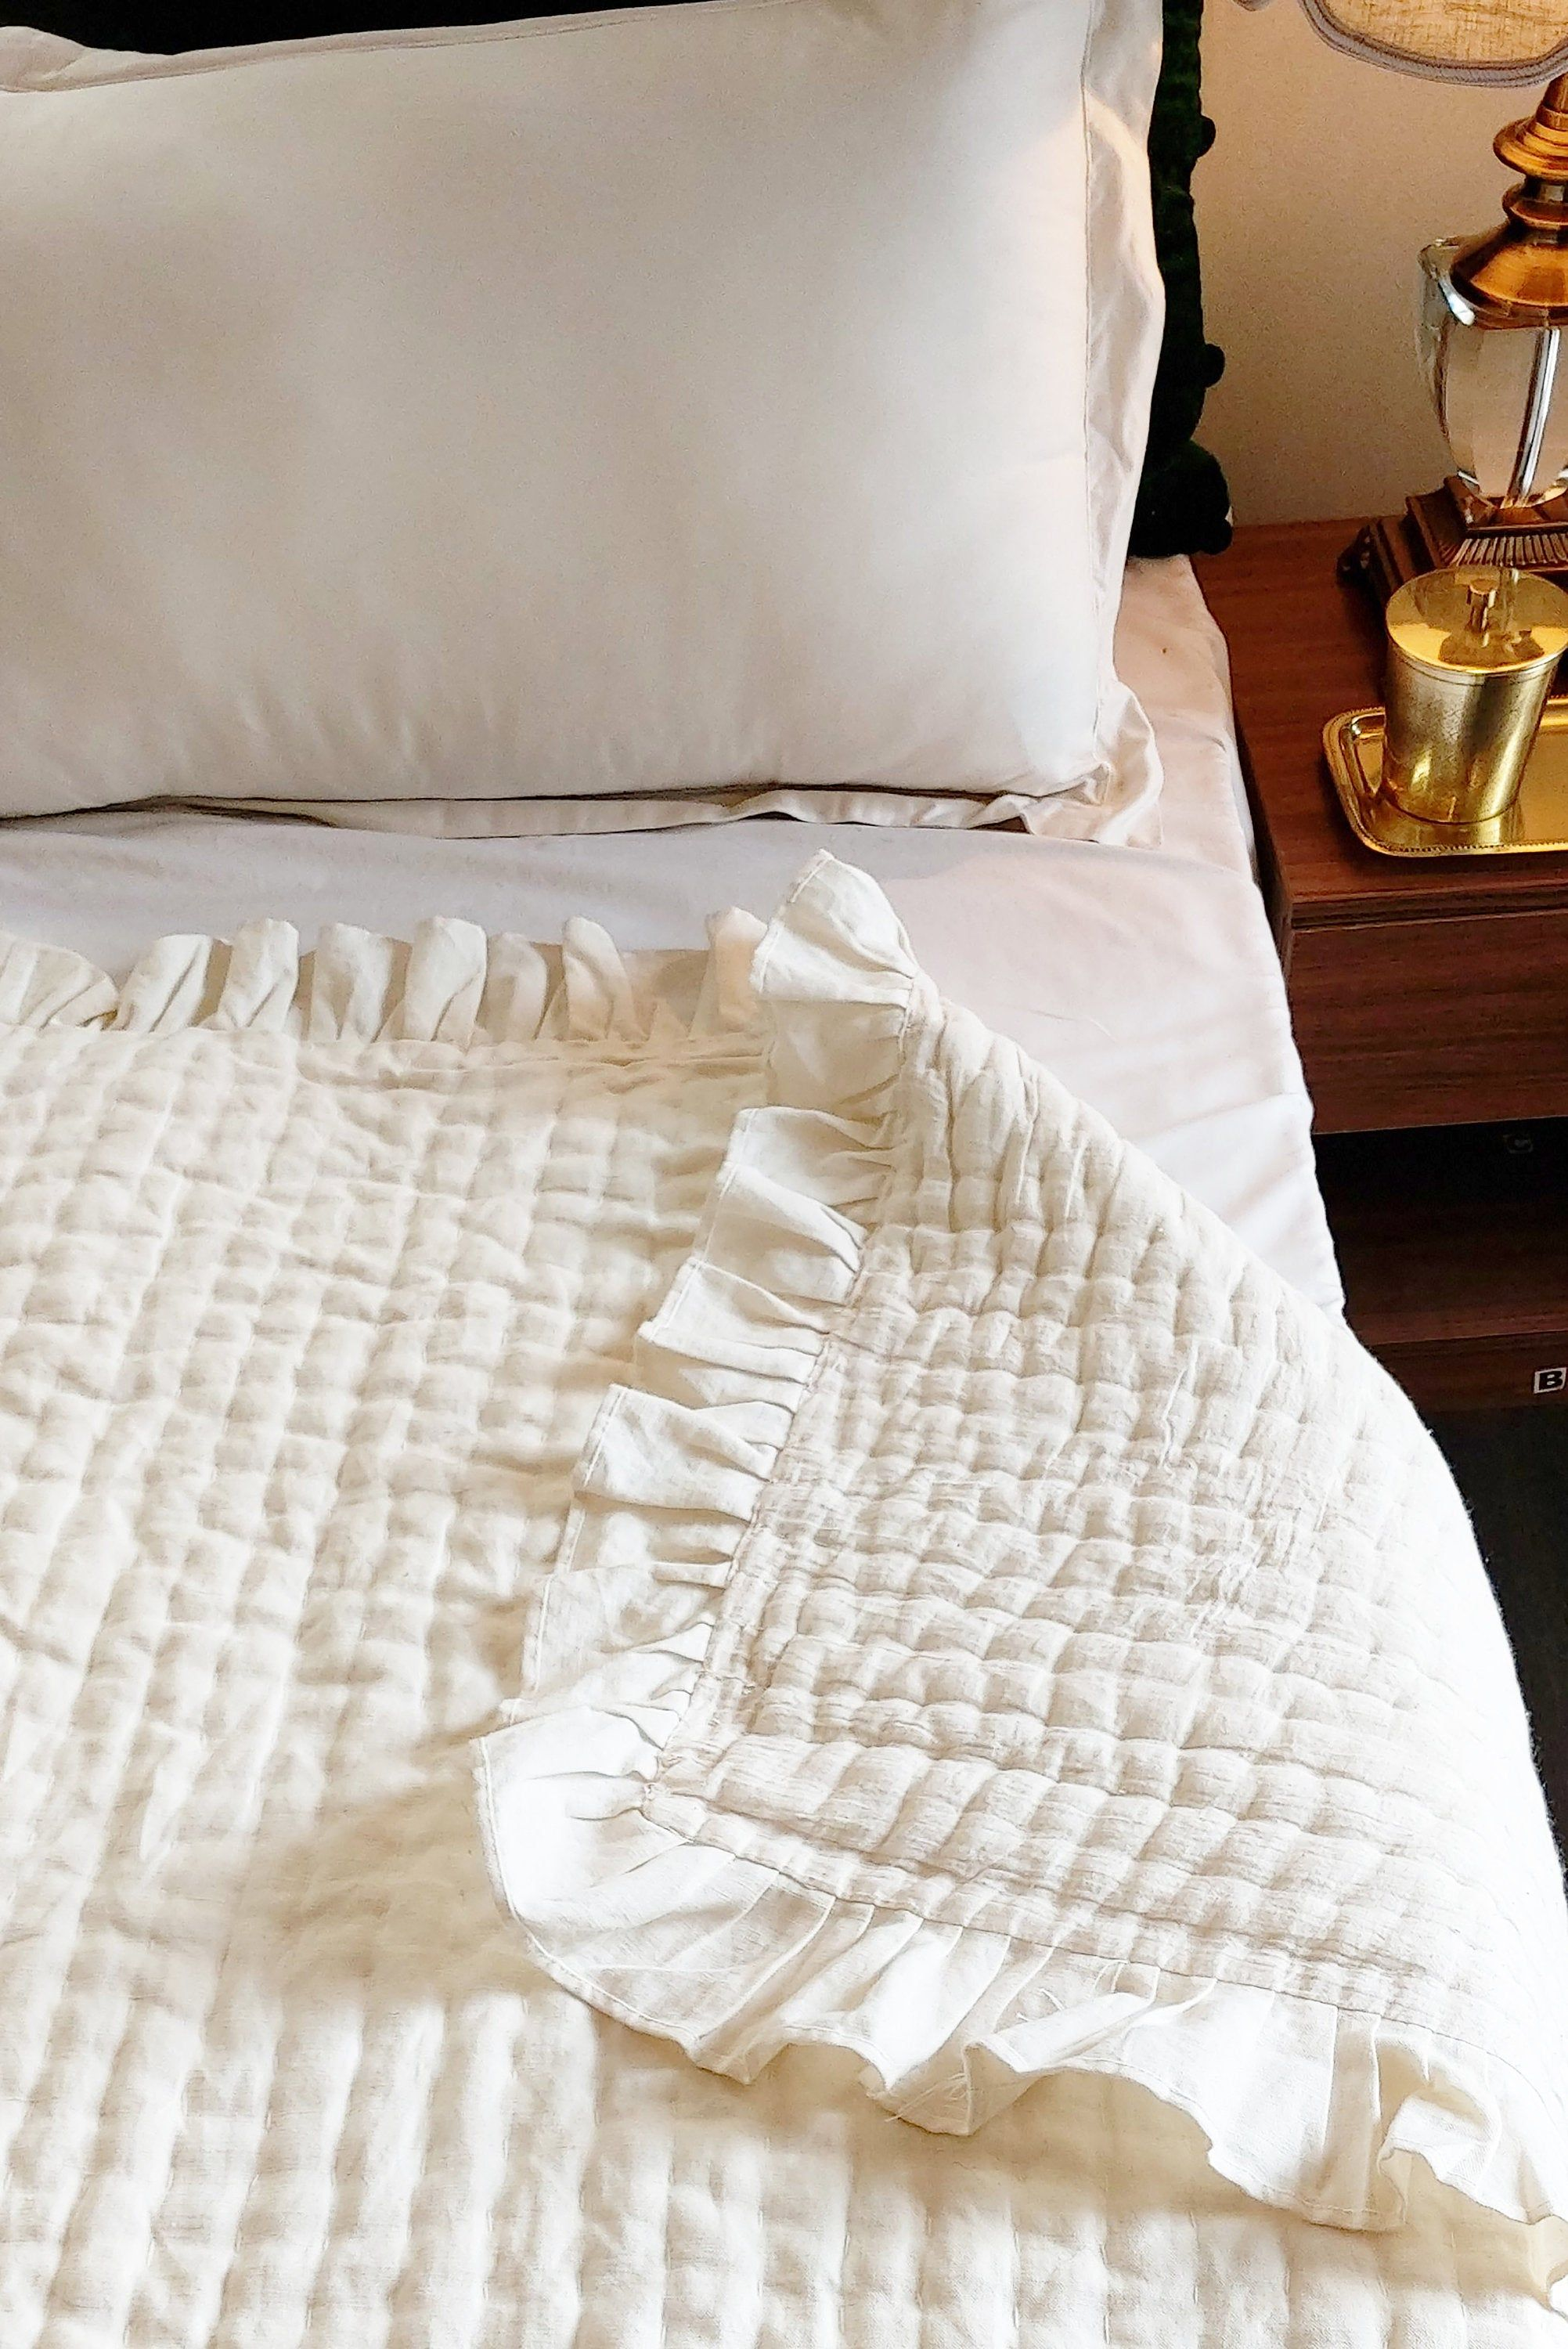 Linen Quilt With Cotton Padding Quilted Blanket Linen Bed Cover Queen Bedspread King Bedspread Twin Bedspread In 2020 Linen Bed Cover Queen Bedspread Bed Spreads